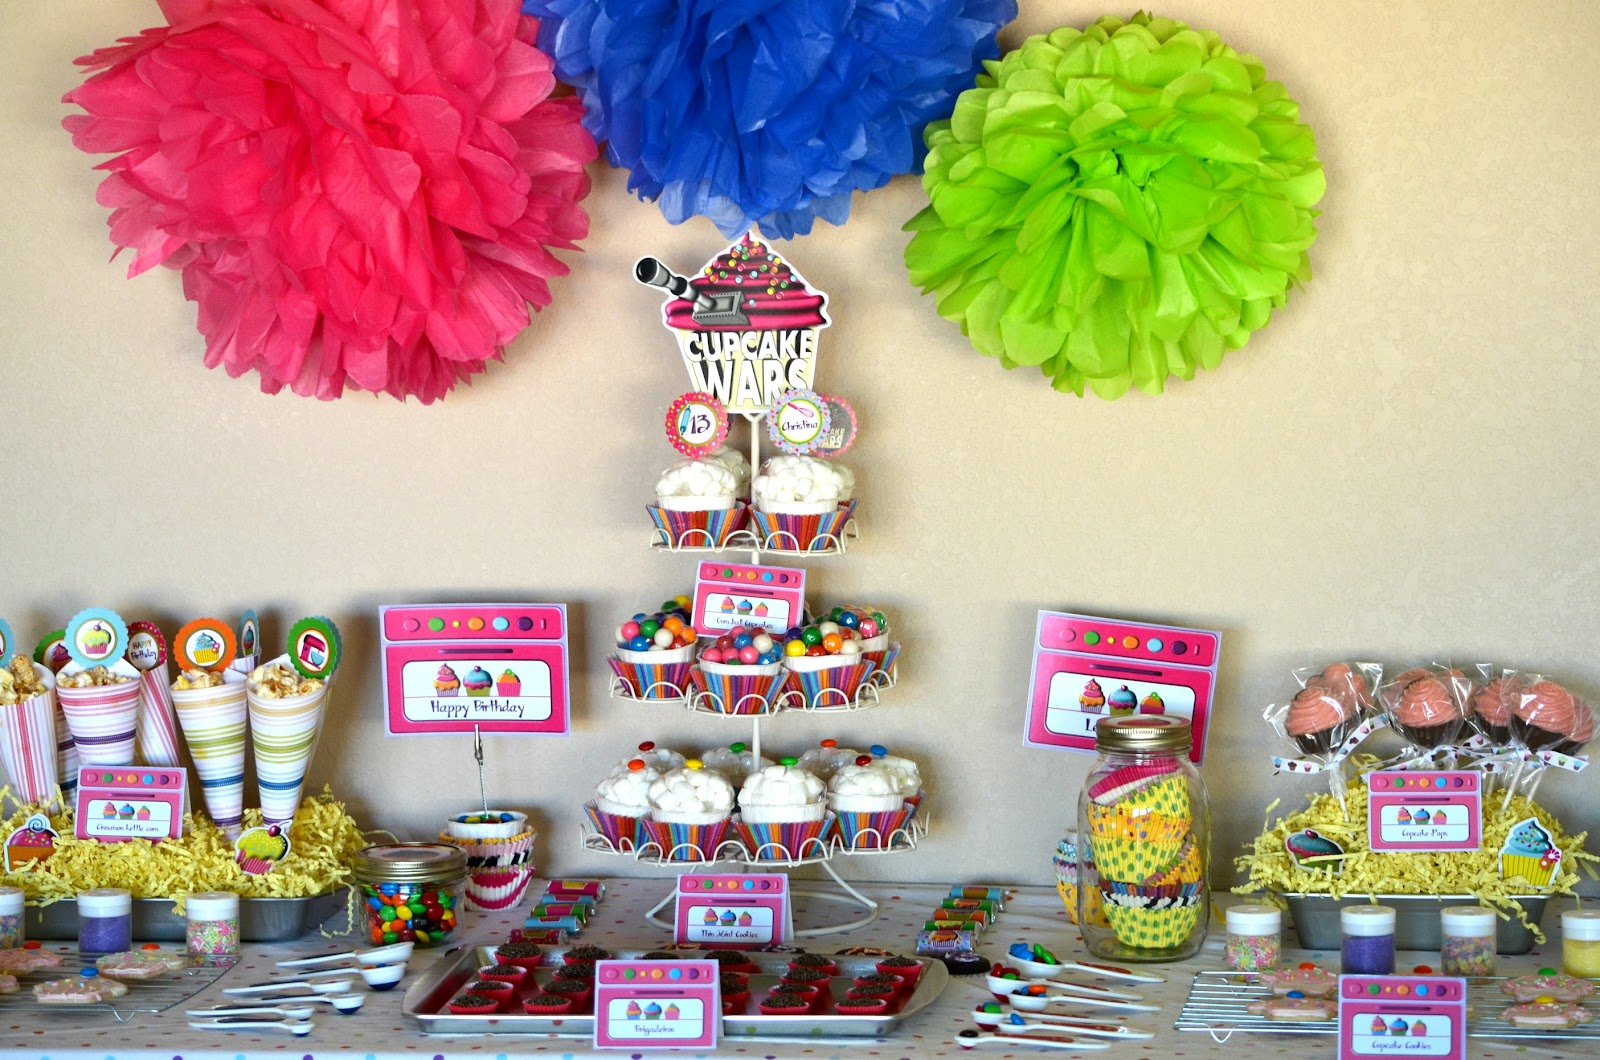 Crissy s Crafts: Cupcake Wars Party